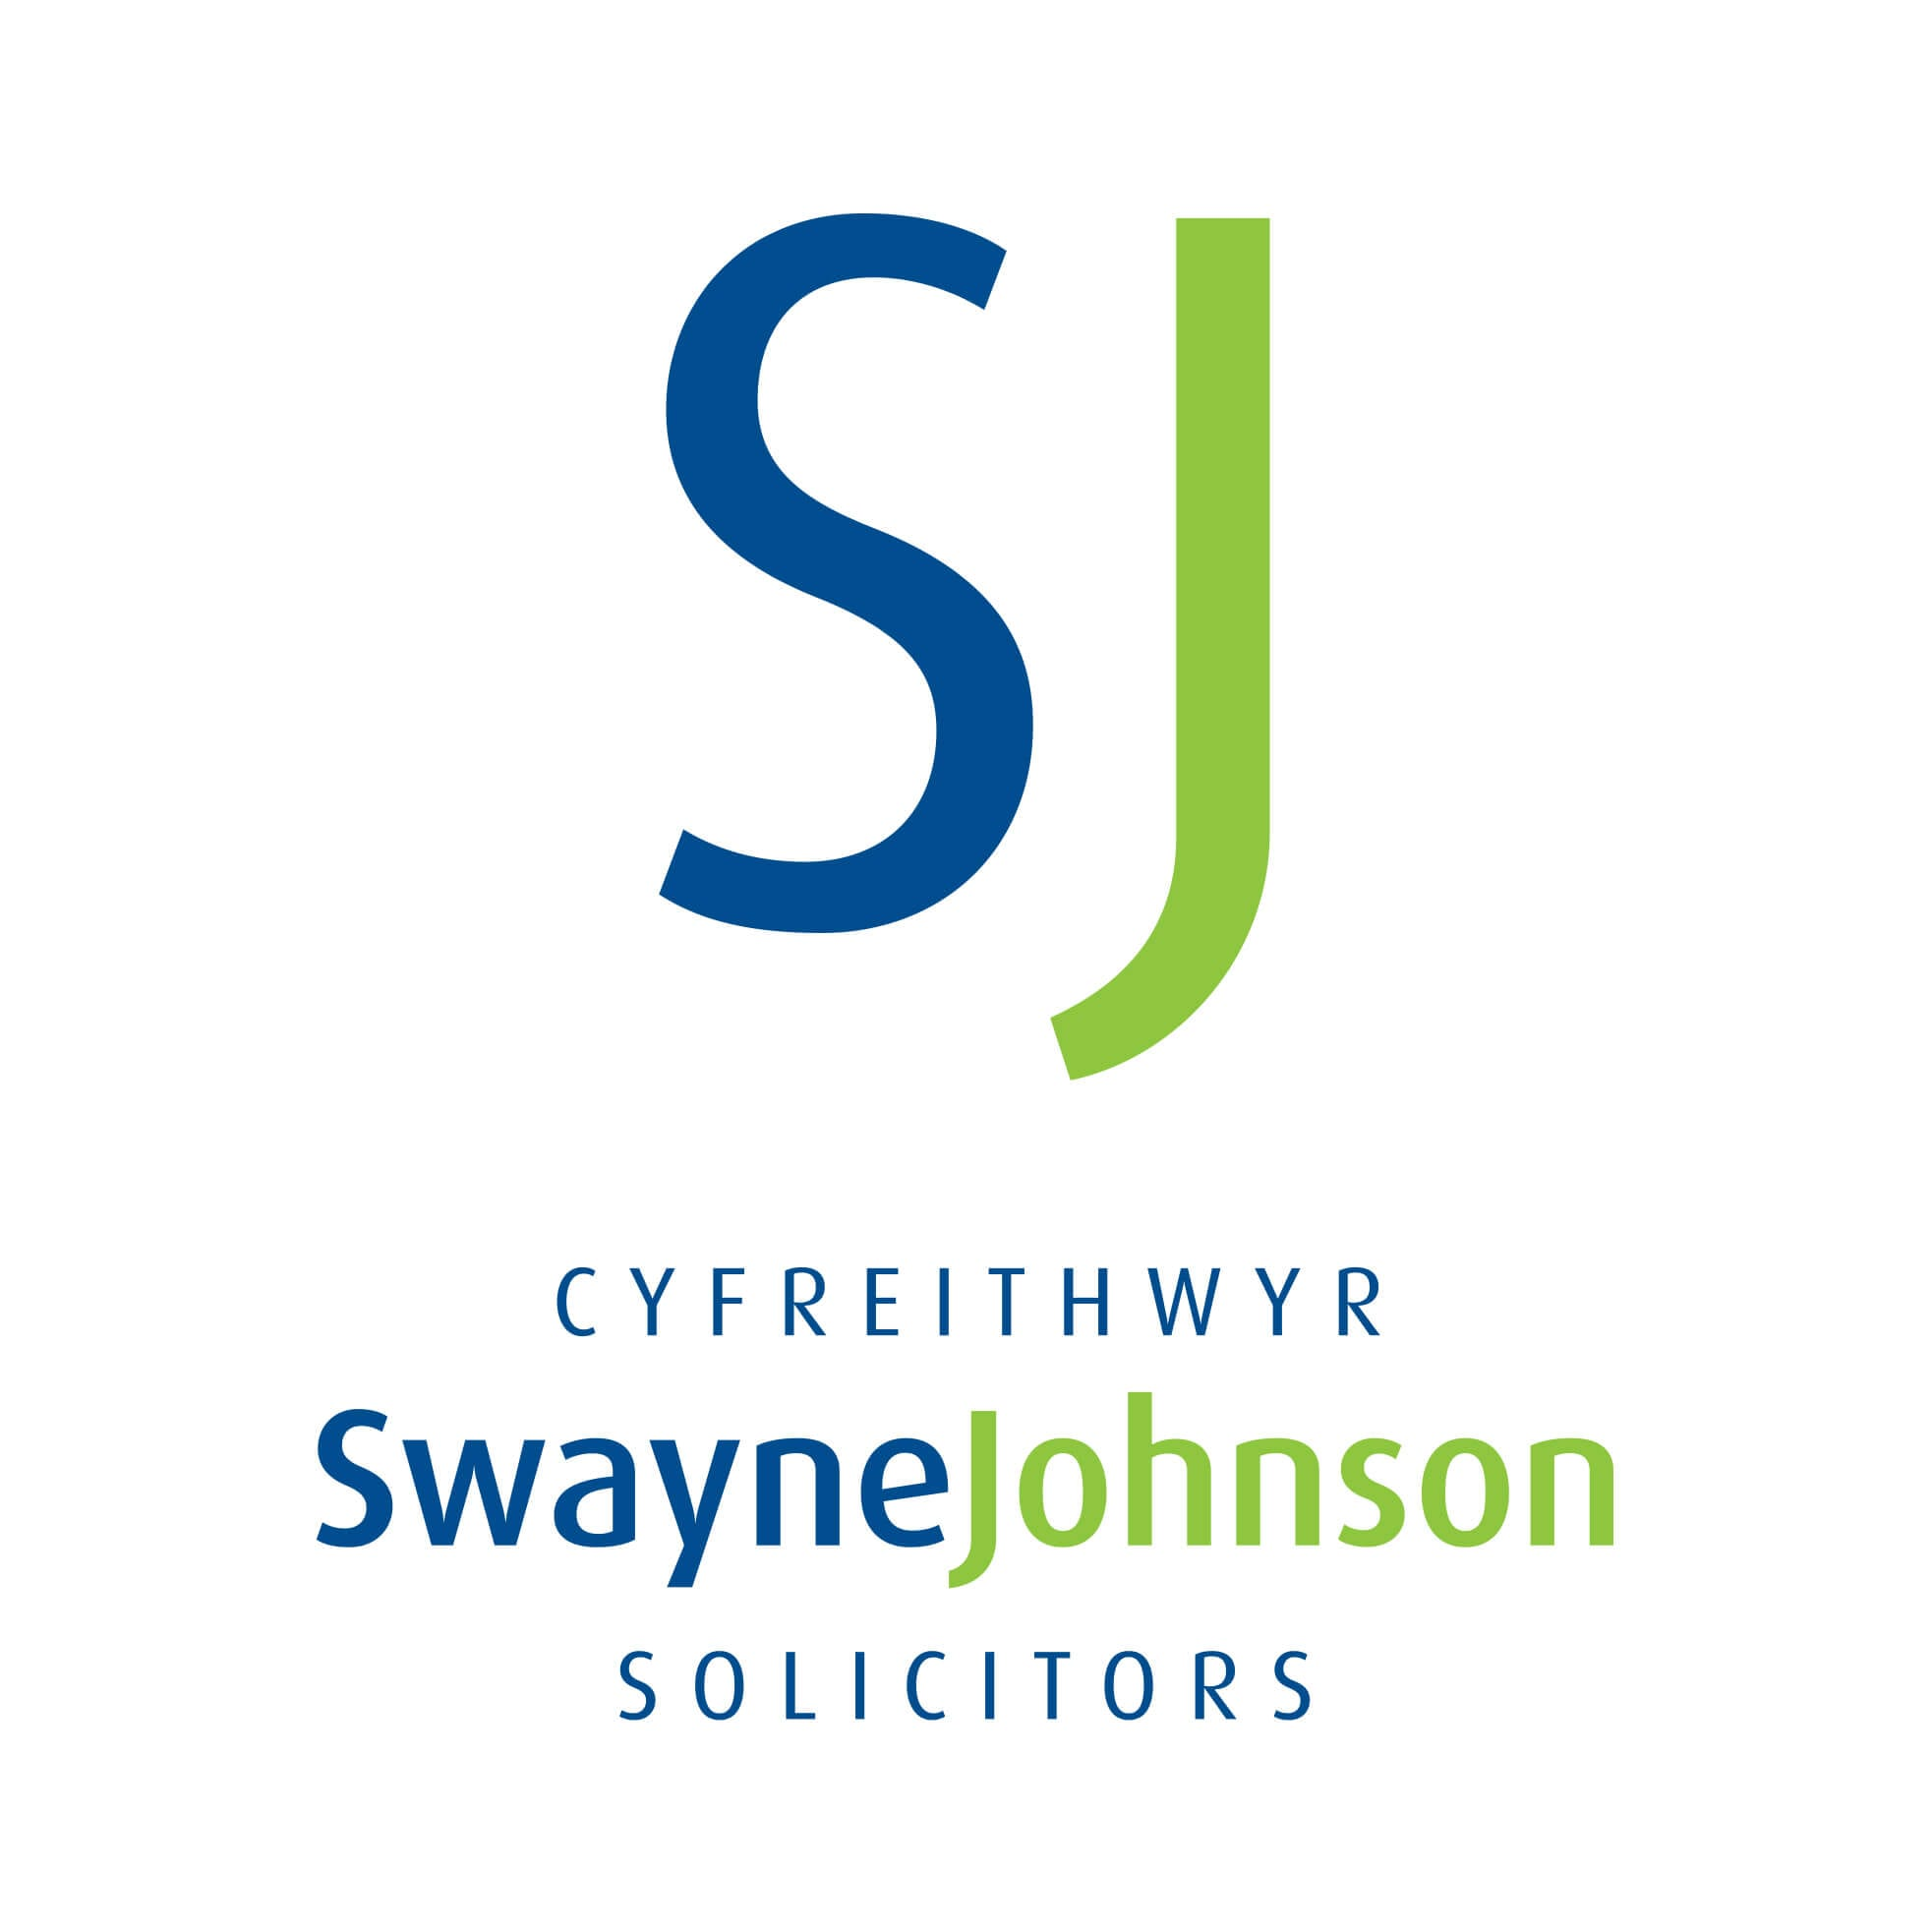 Swayne Johnson Solicitors